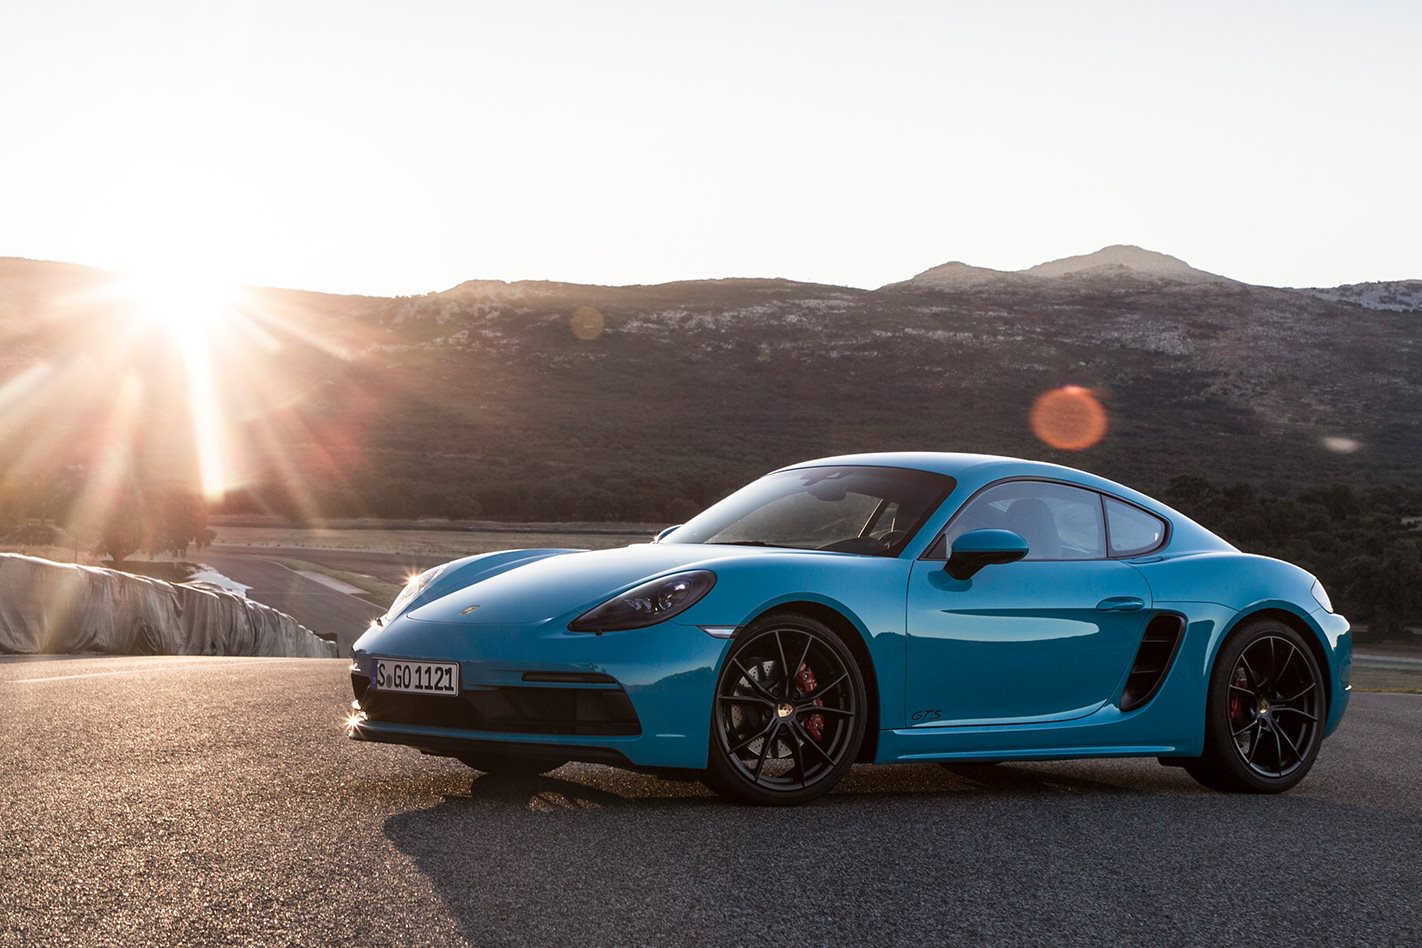 Porsche 718 Boxster And Cayman Updated For 2019 Engine Diagram They Can Be Manually Switched Via A Button On The Centre Console Or Automatically Whenever Speed Rises Above 3500rpm